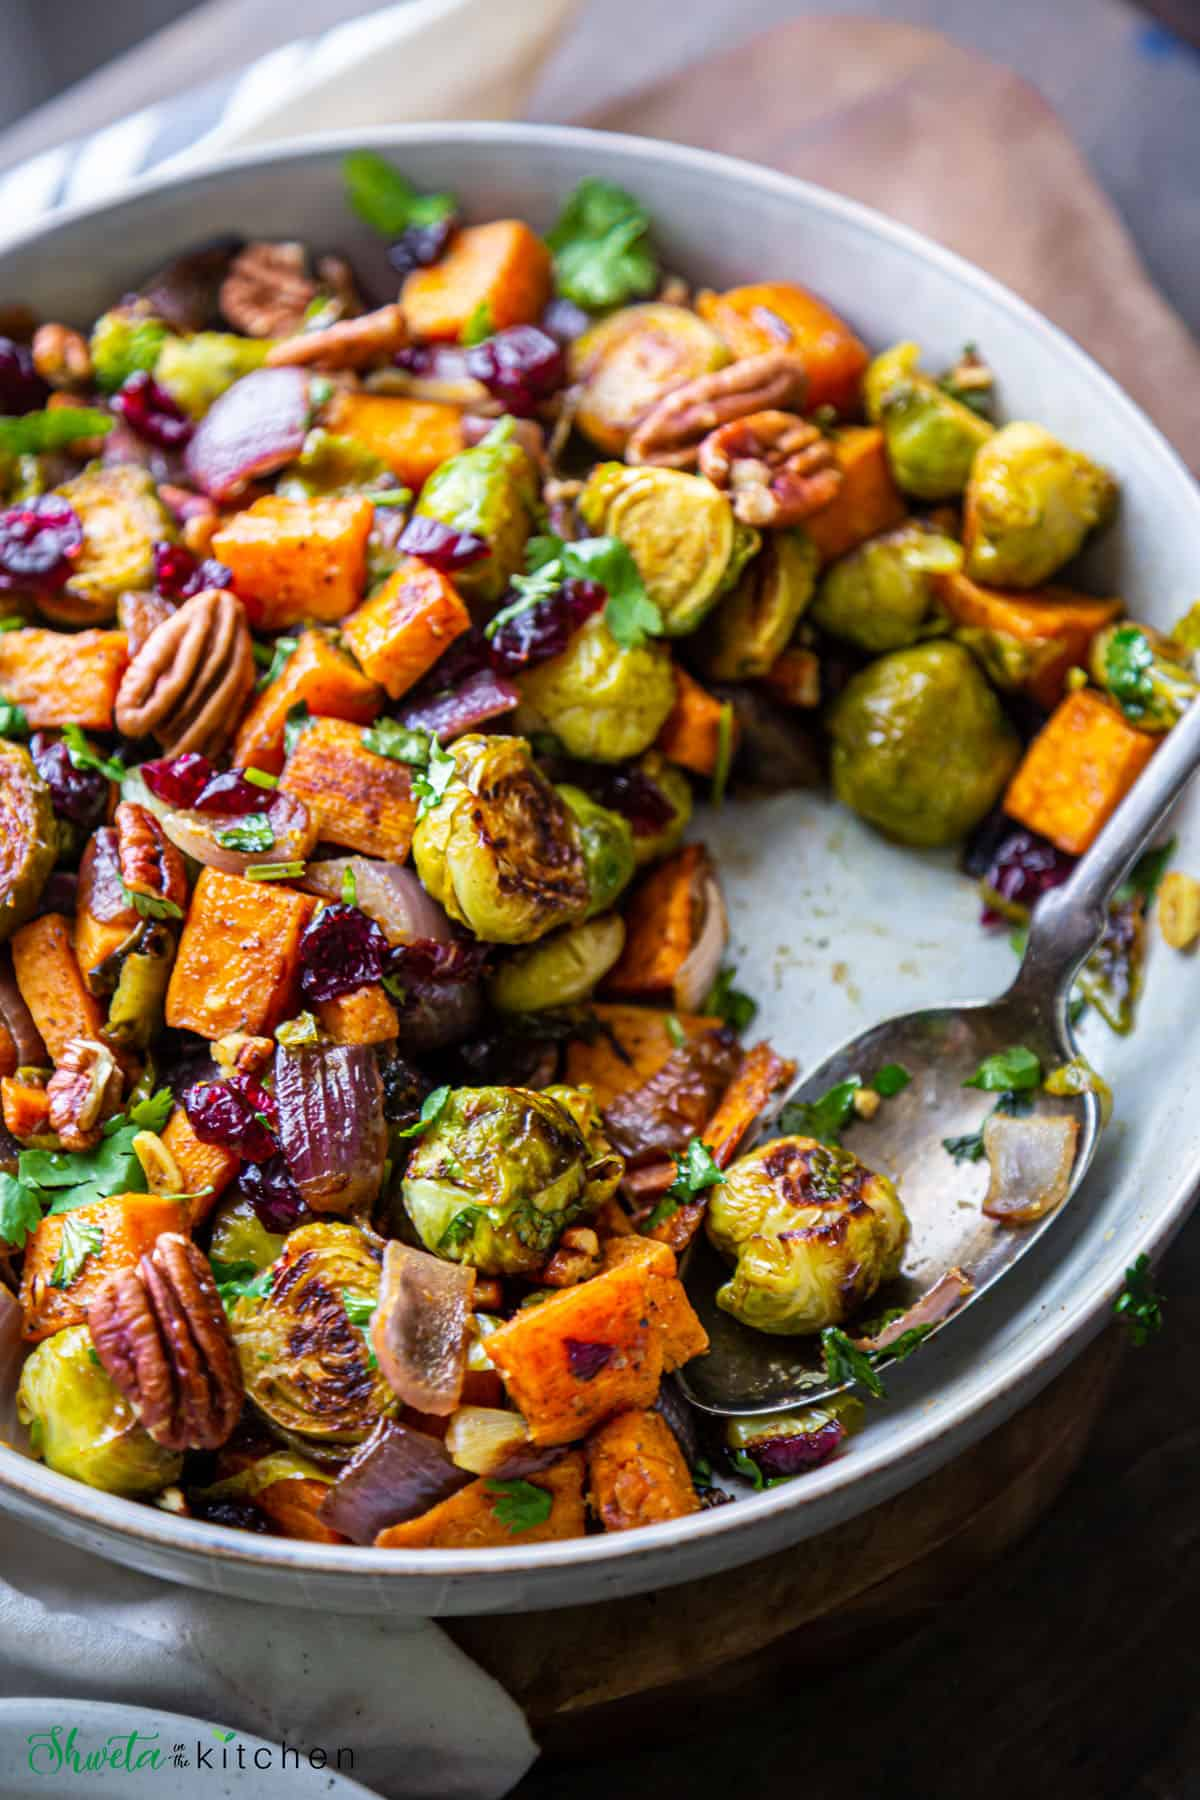 Bowl of roasted sweet potatoes andbrusselssproutswith a spoon